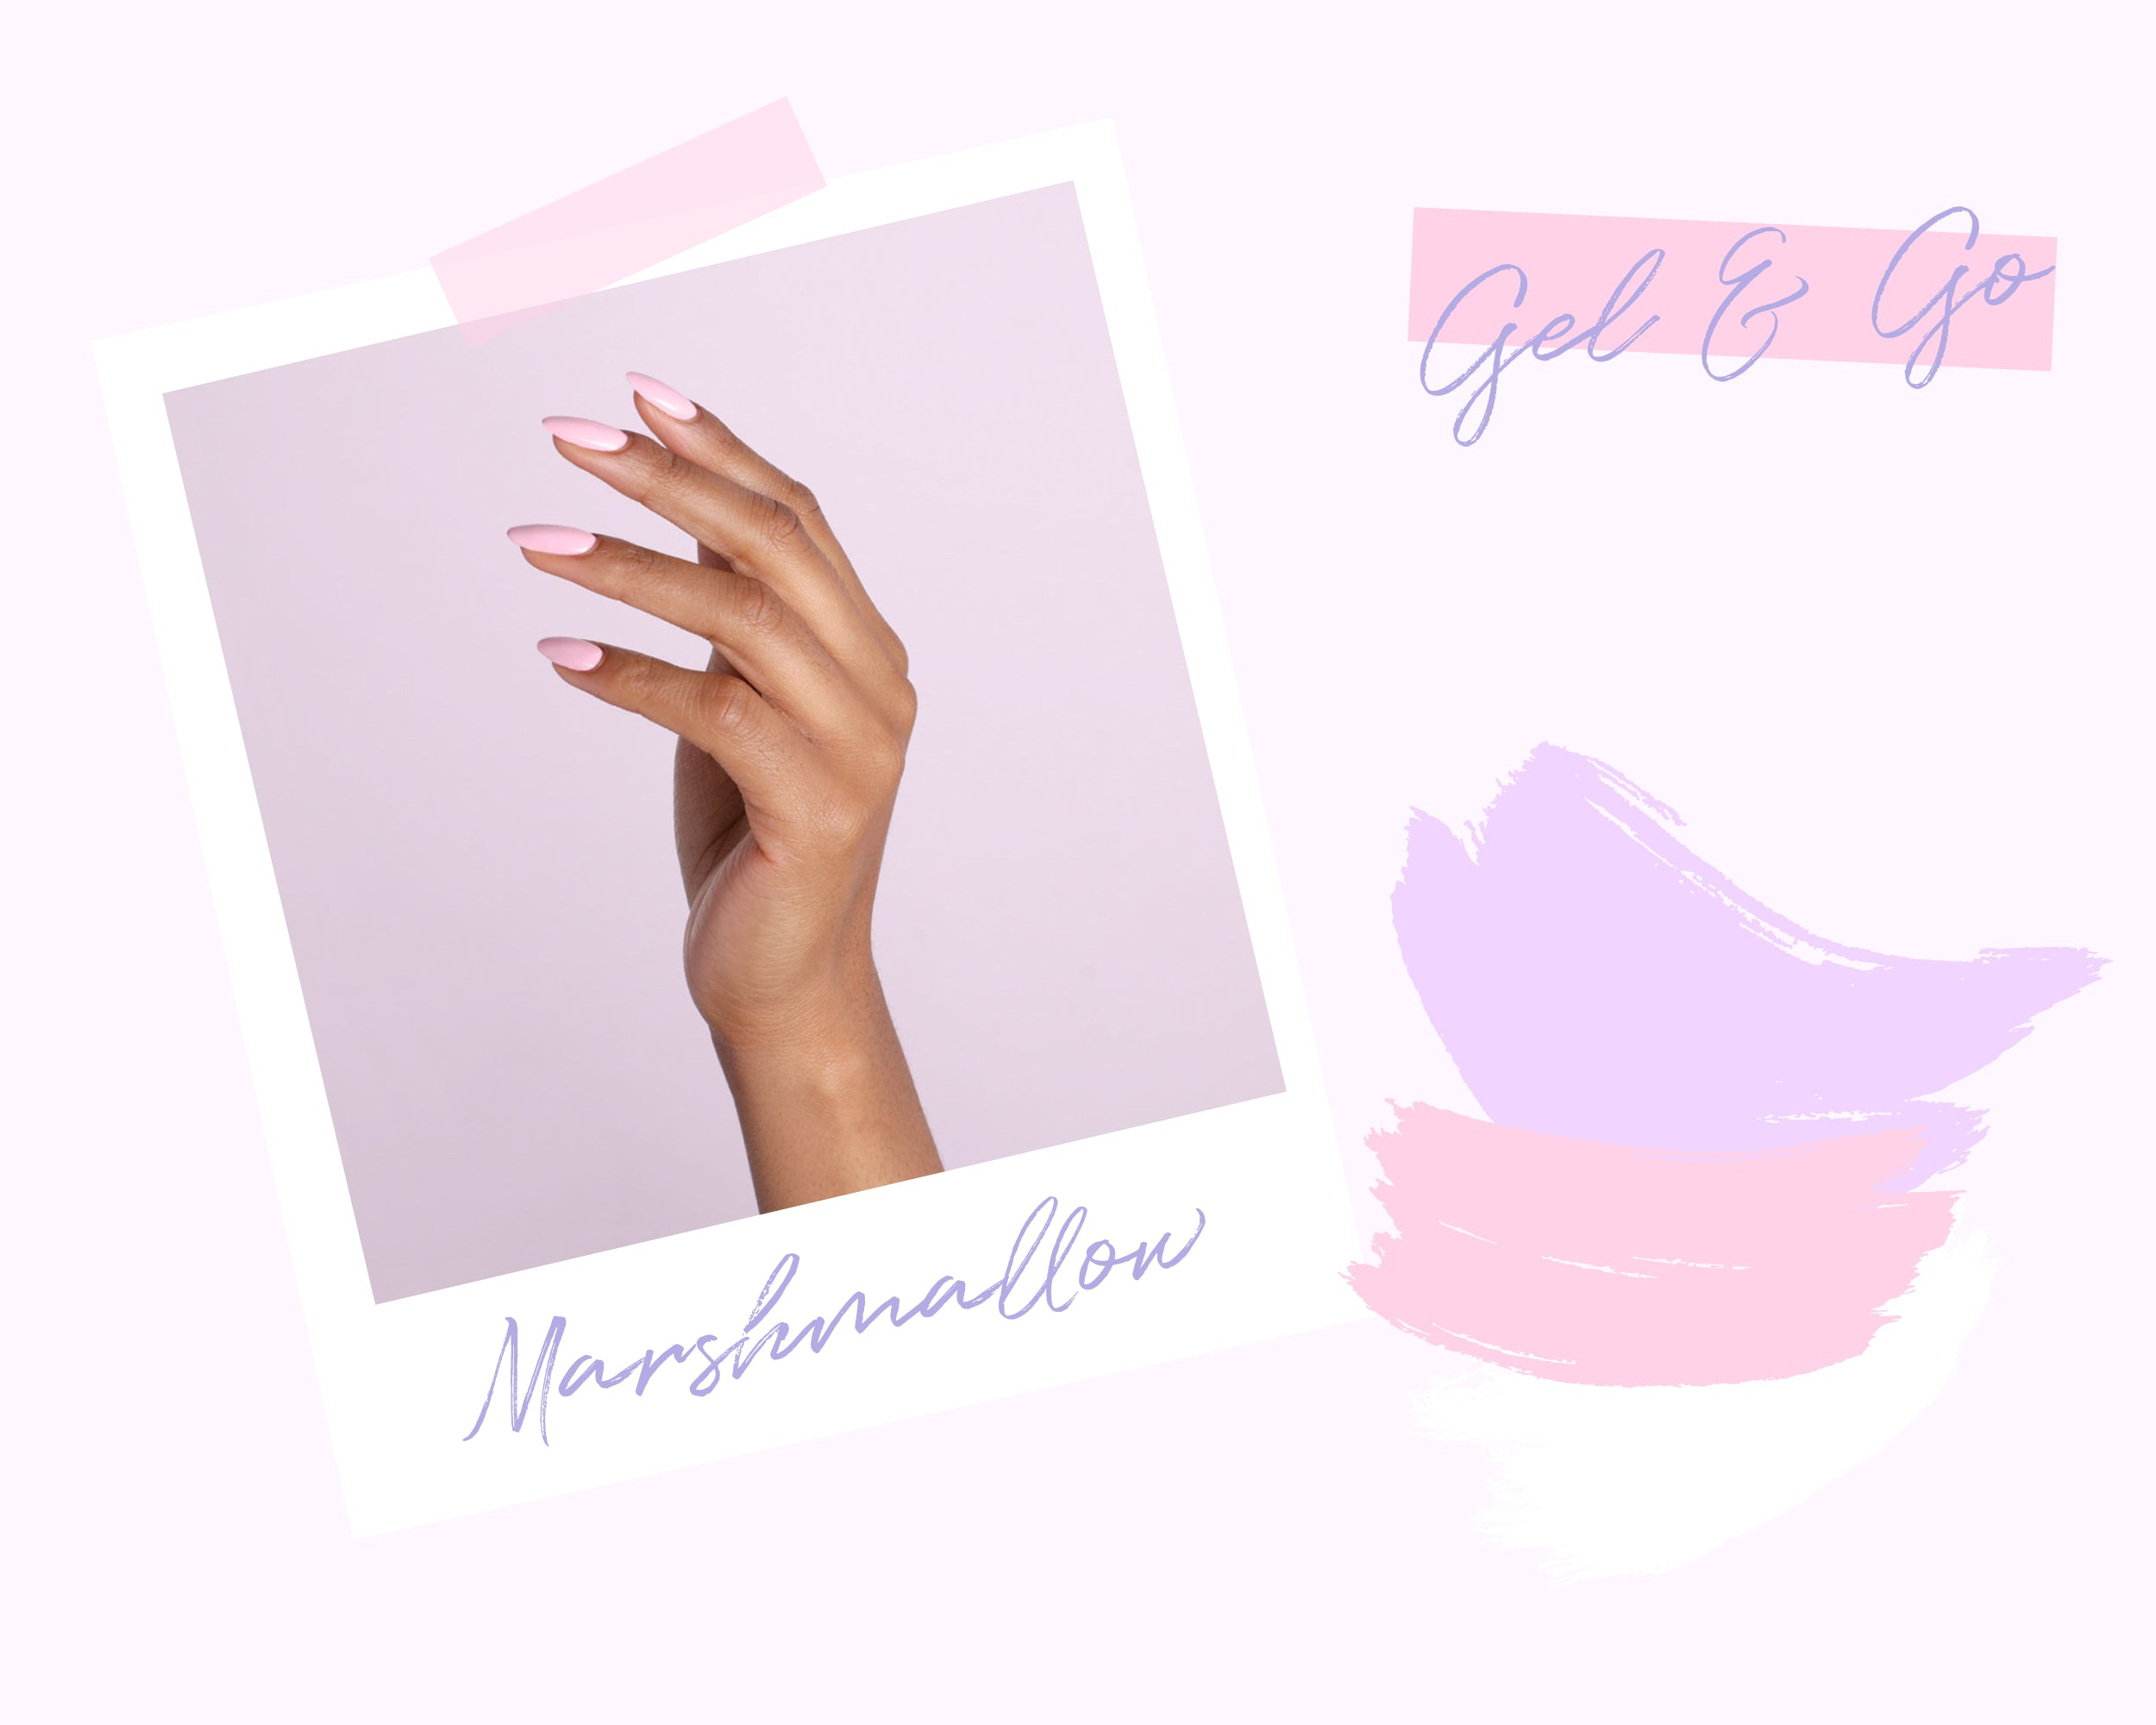 Gel and Go Marshmallow